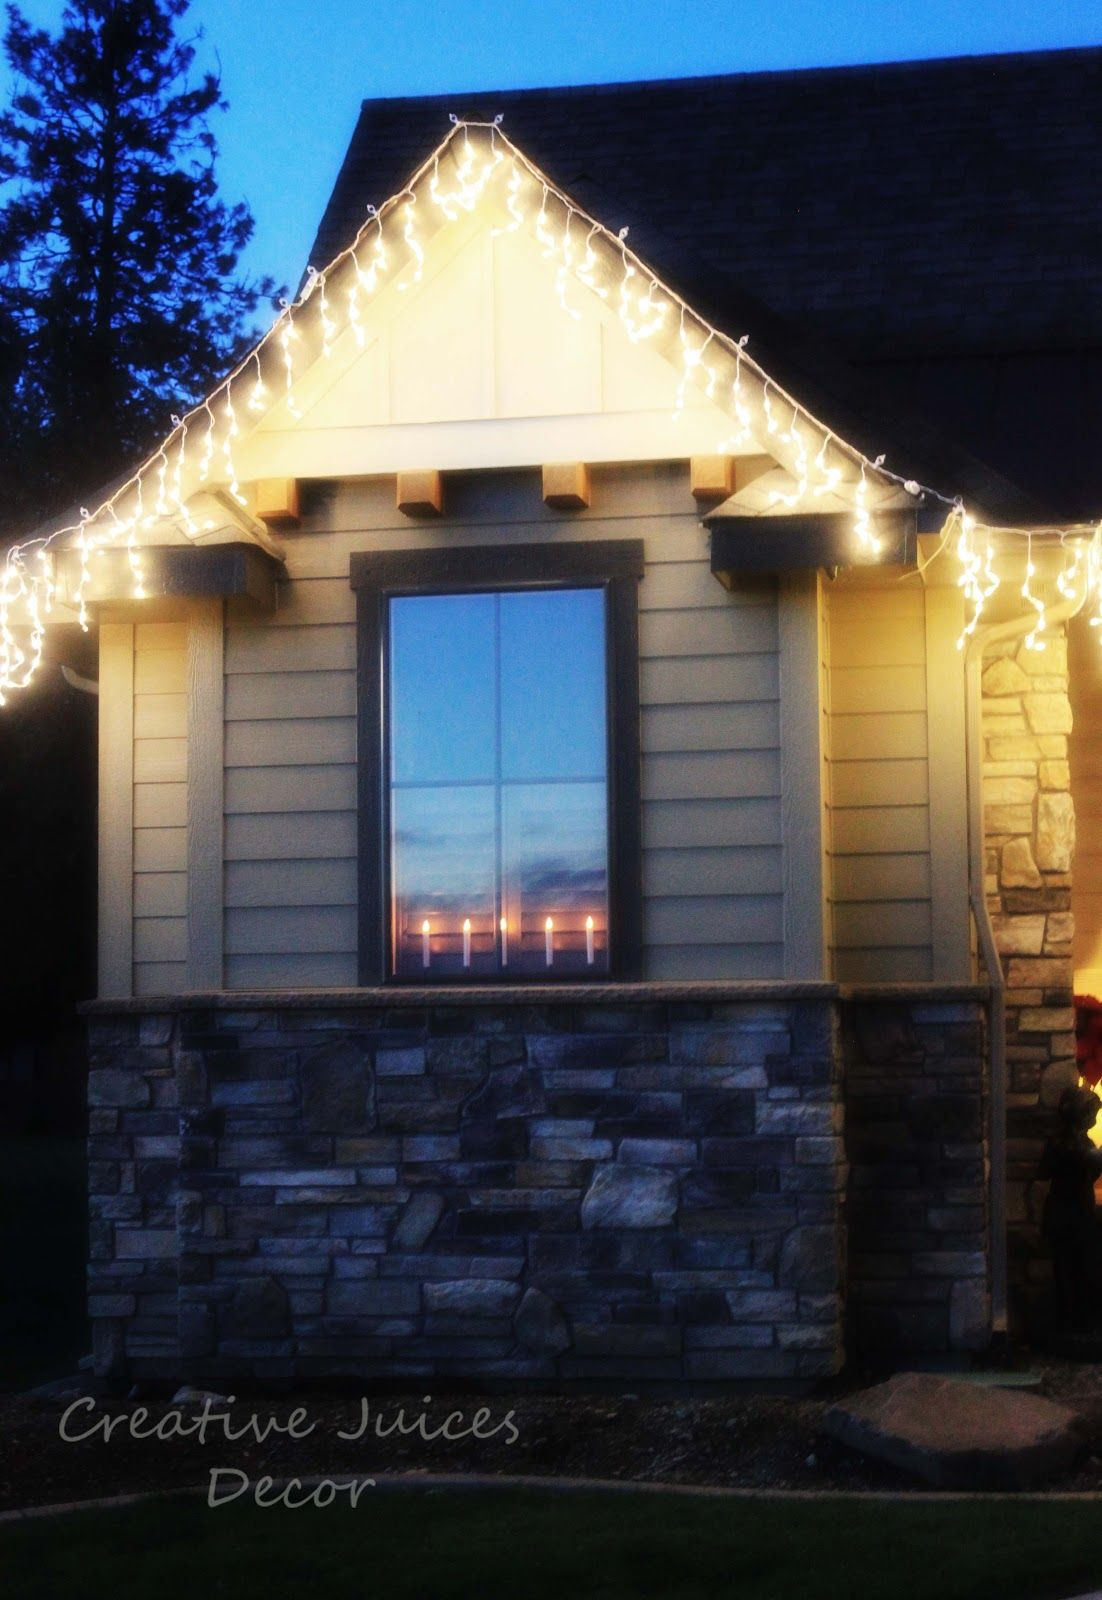 Creative Juices Decor: Outdoor Christmas Lights - Tips and Tricks for Taking Pictures